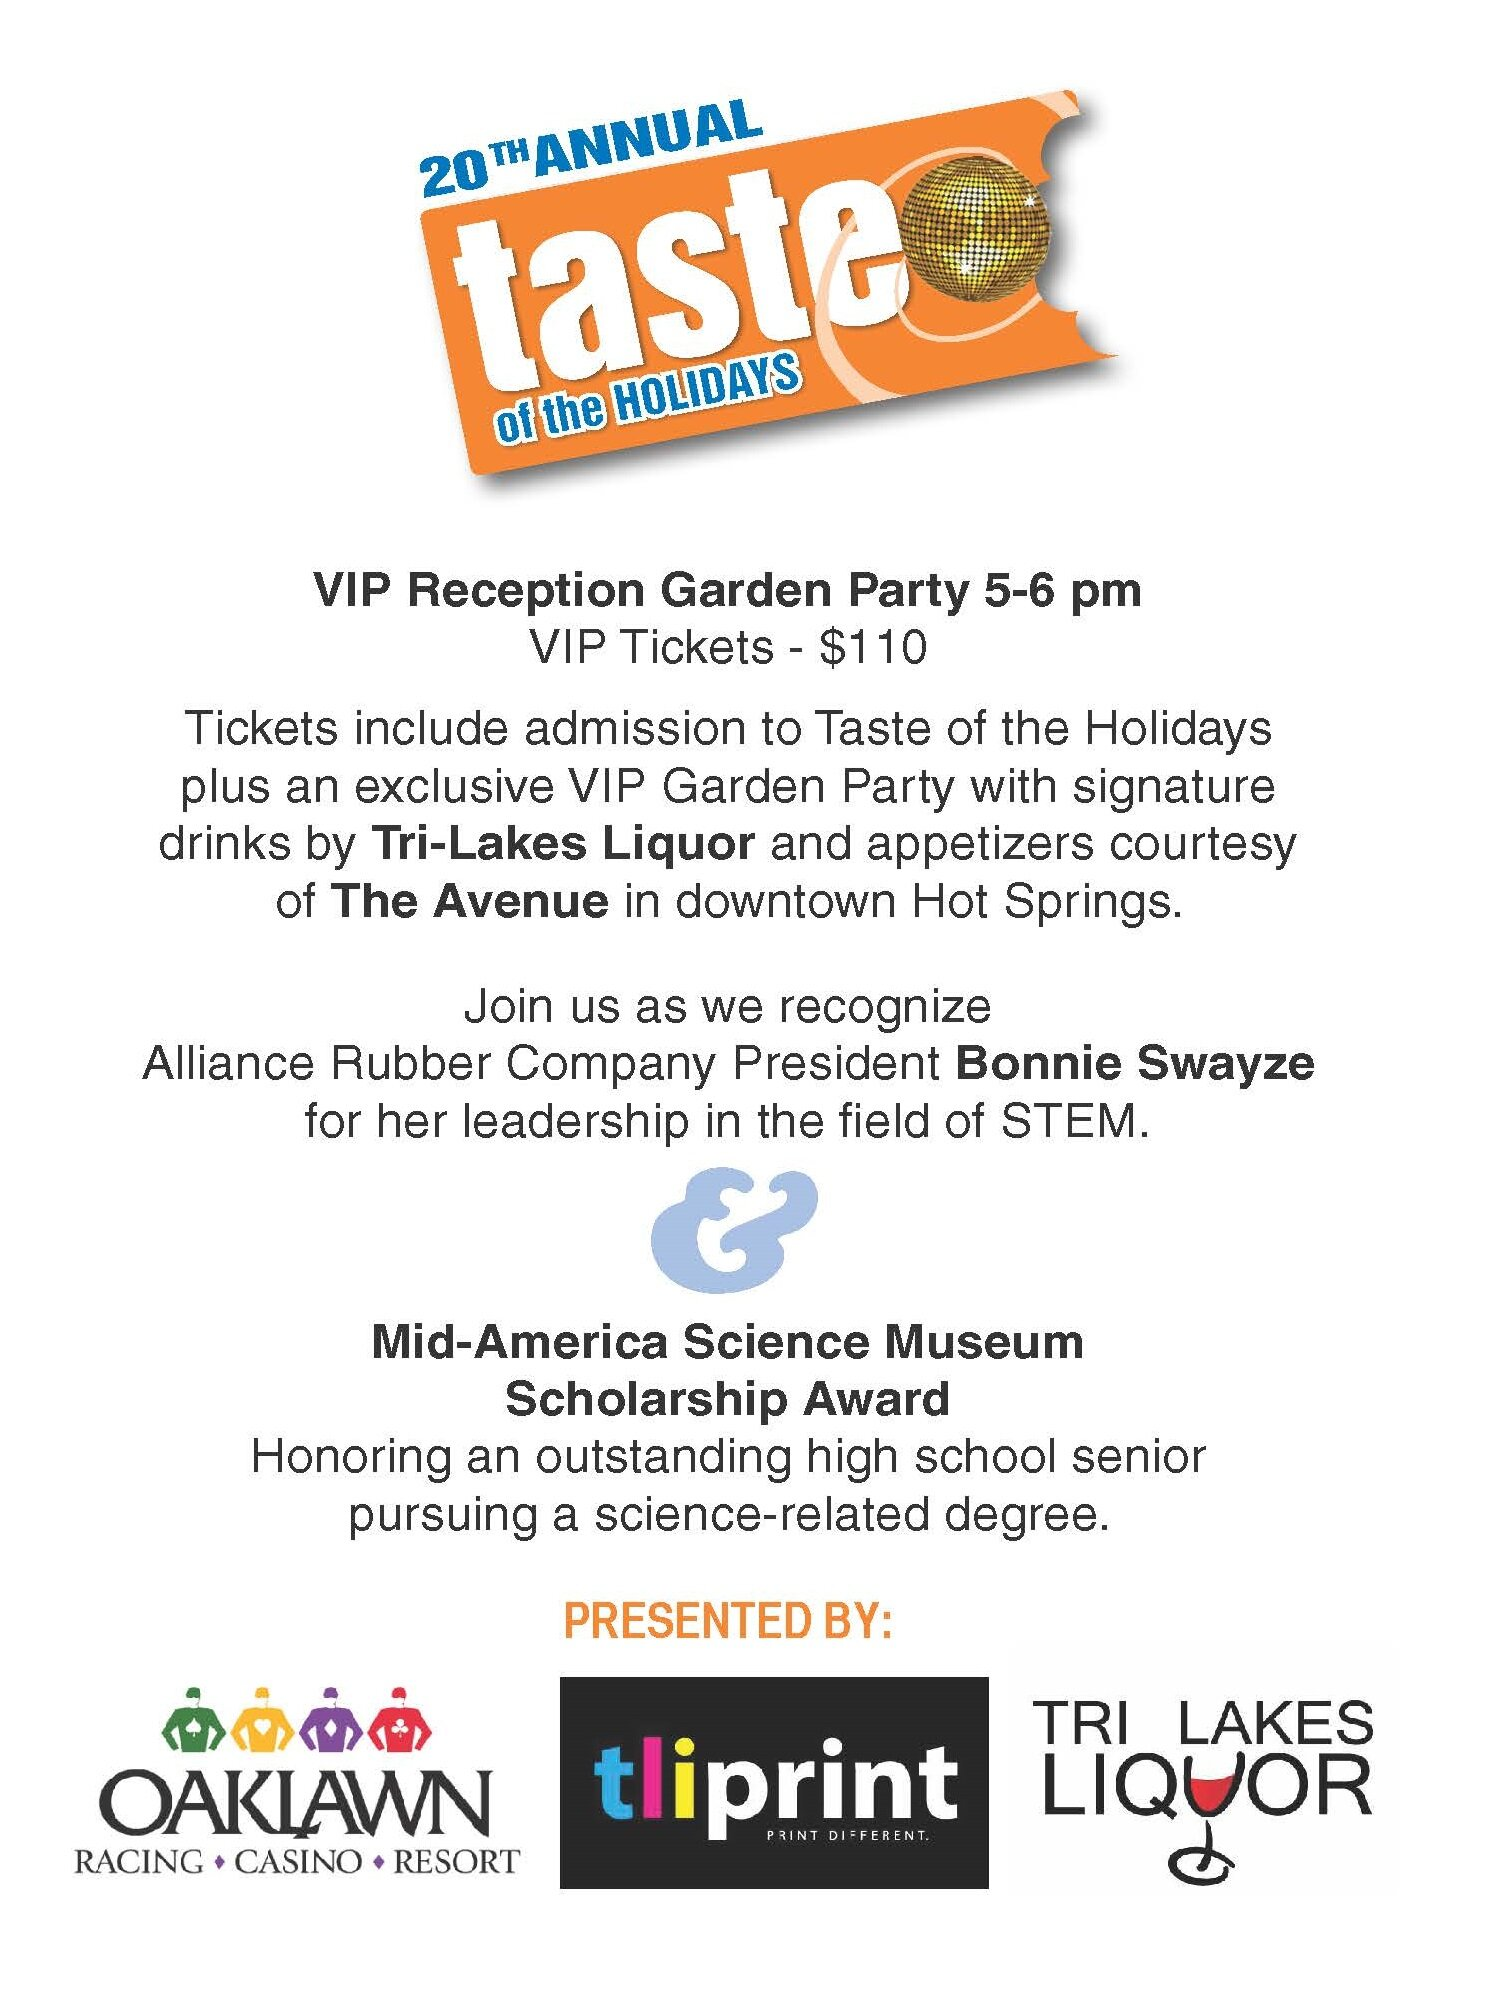 Join us for this year's VIP Garden Party! - Featuring Signature drinks by Tri-Lakes Liquor, food by Casey Copeland from The Avenue and decor by Statements for the Home!